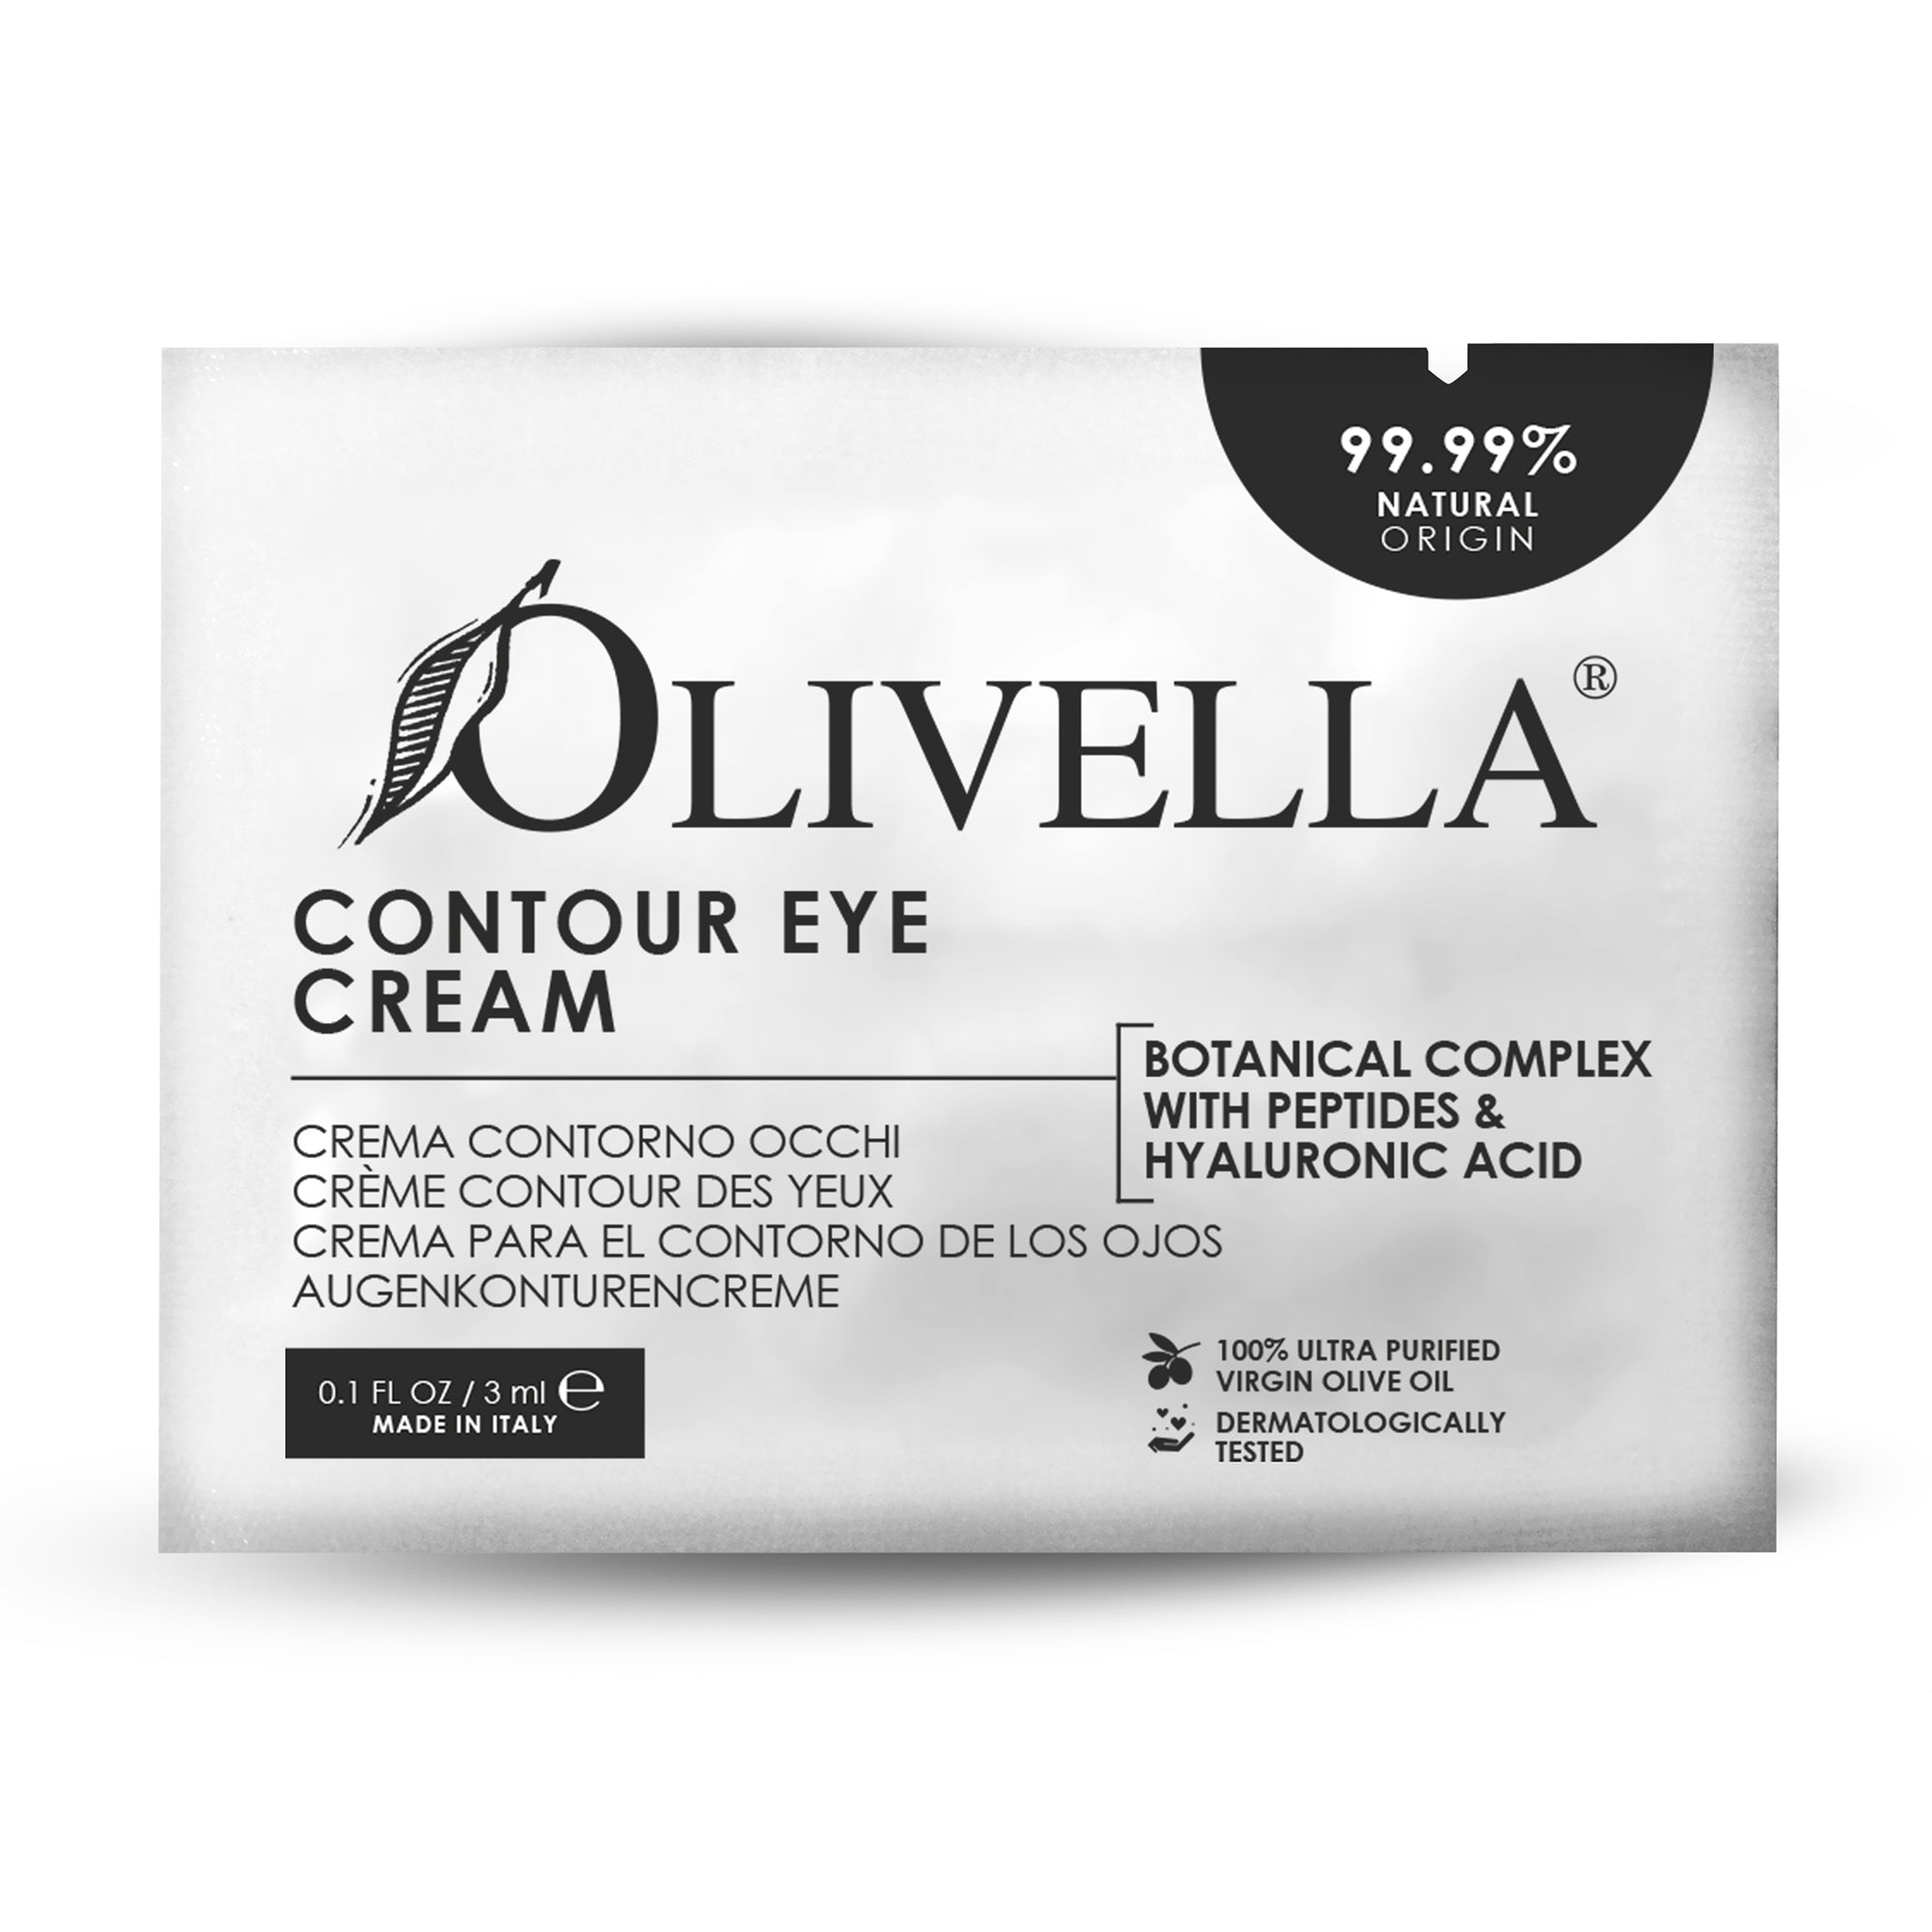 Olivella Contour Eye Cream Sample